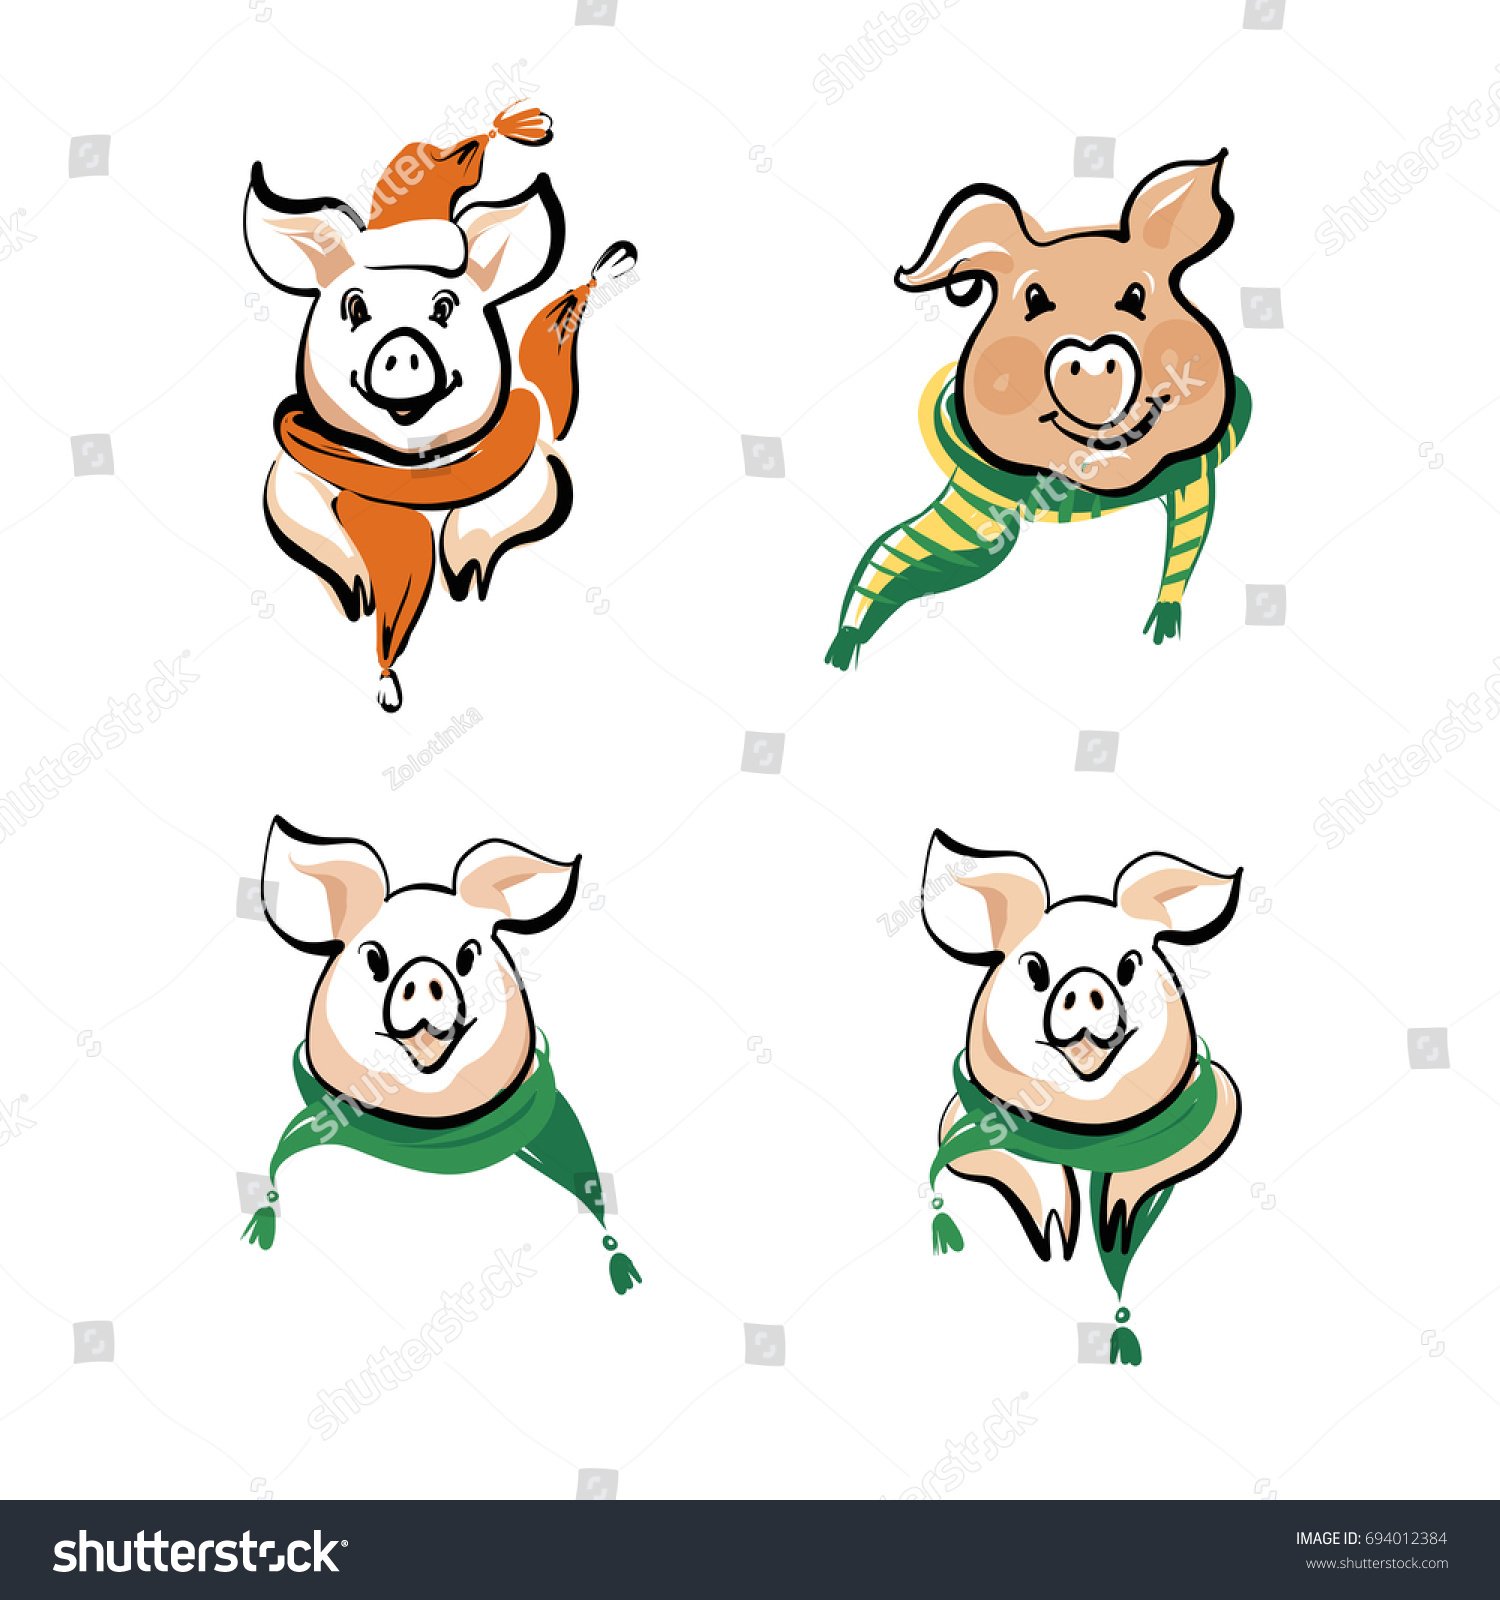 Sketch vector illustration set head face stock vector 694012384 sketch vector illustration set of head face pig in scarf symbol of 2019 buycottarizona Gallery